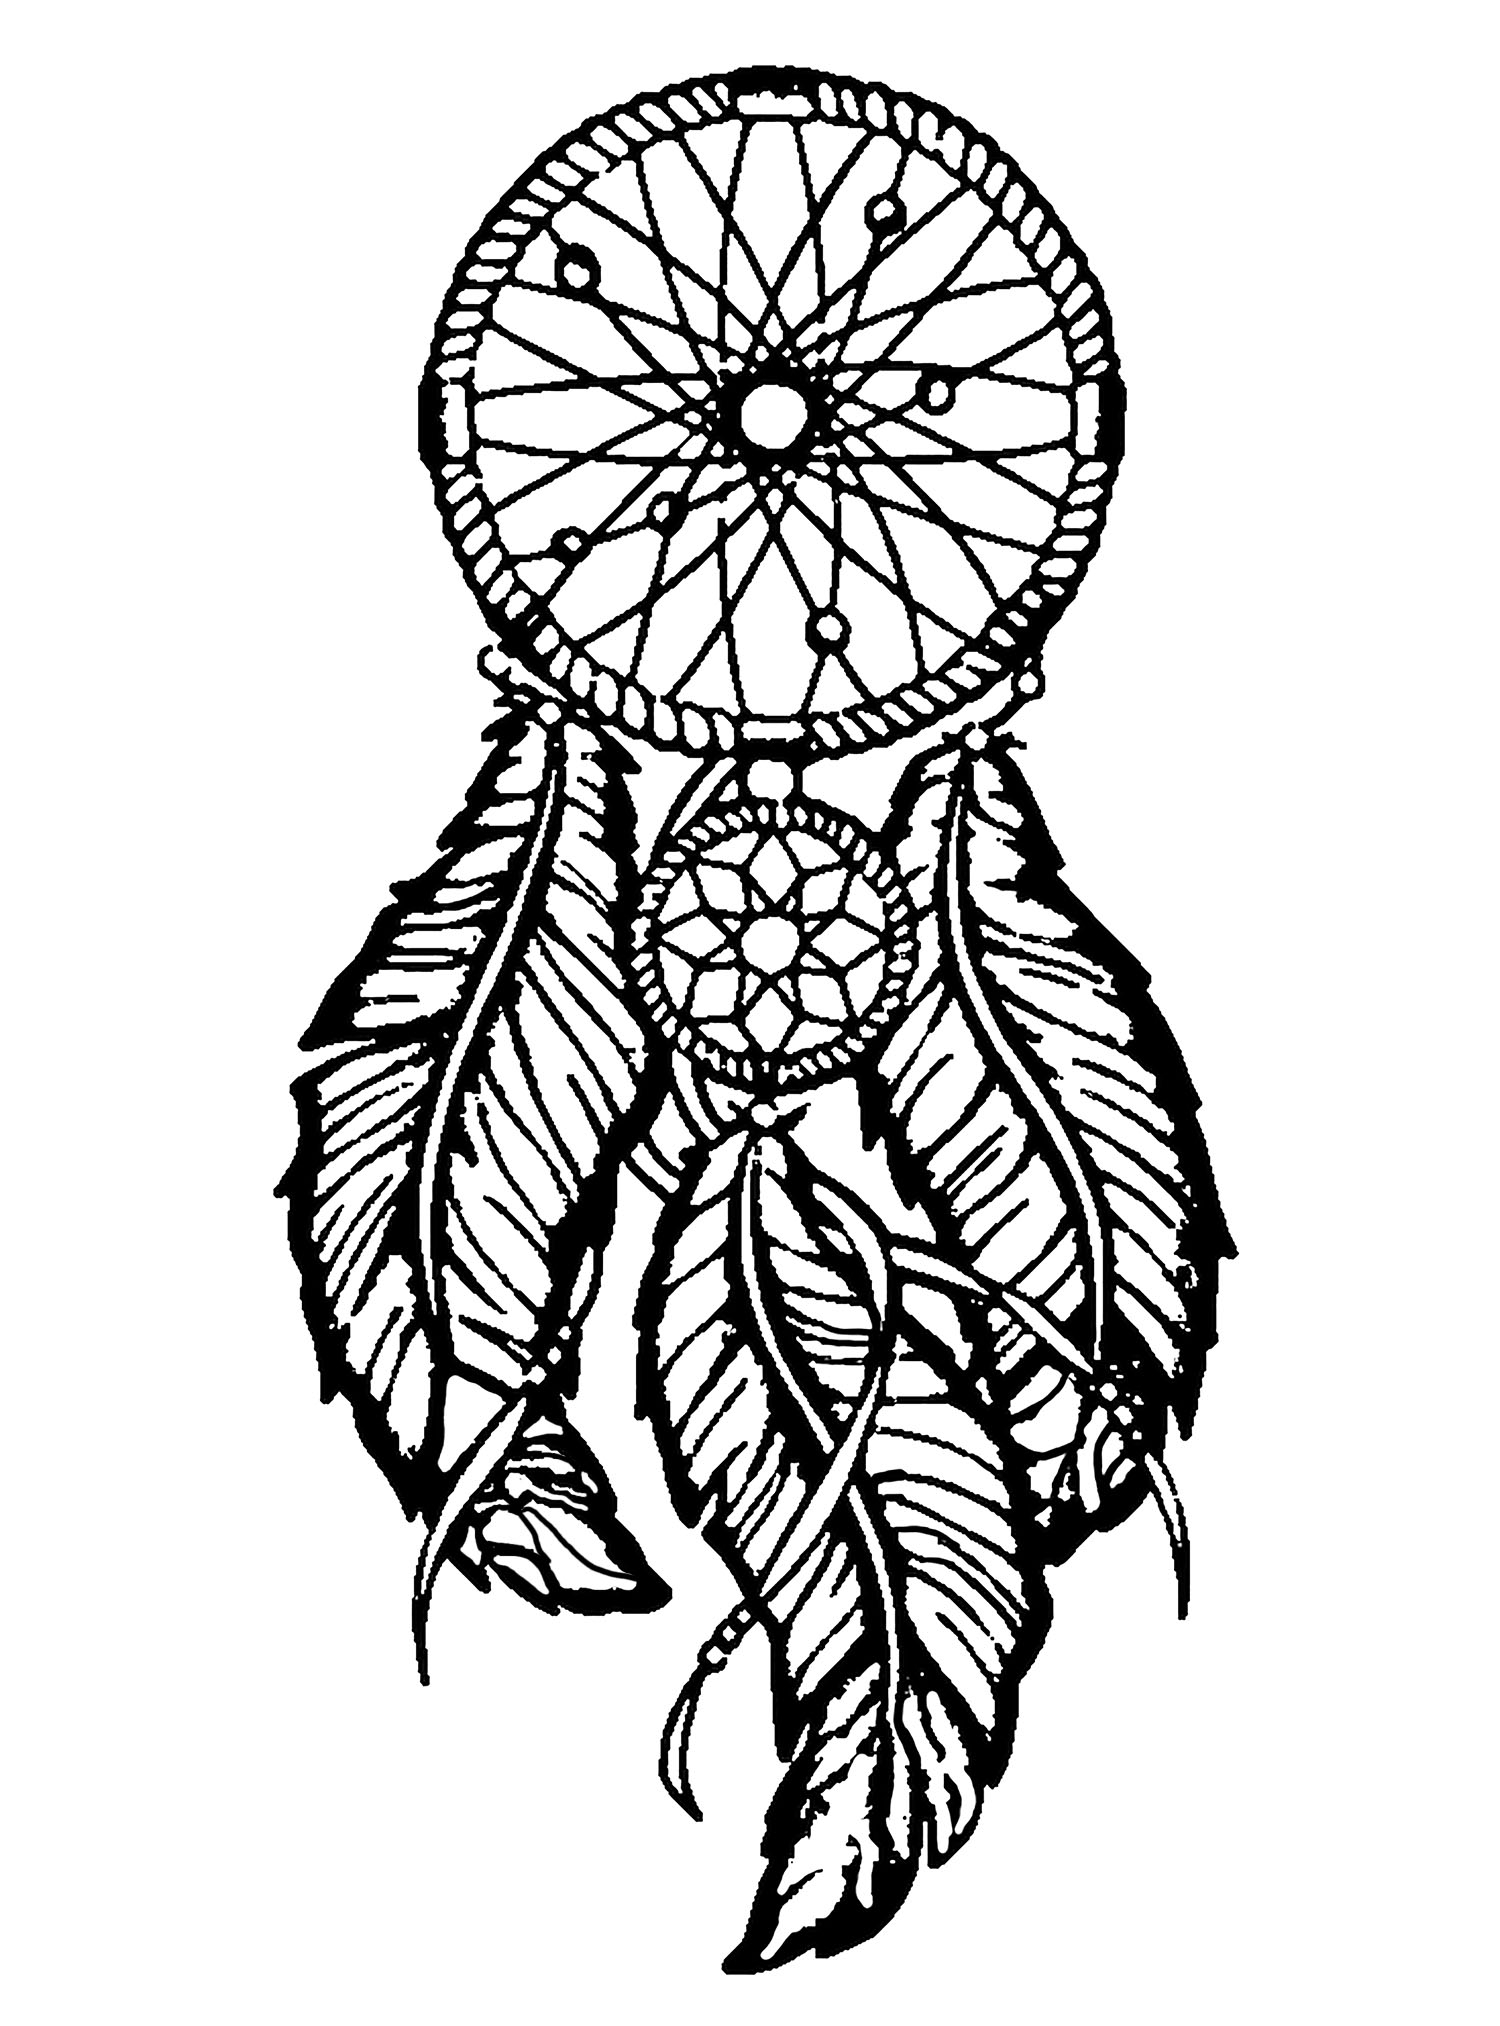 free easy coloring pages simple coloring pages to download and print for free pages coloring easy free